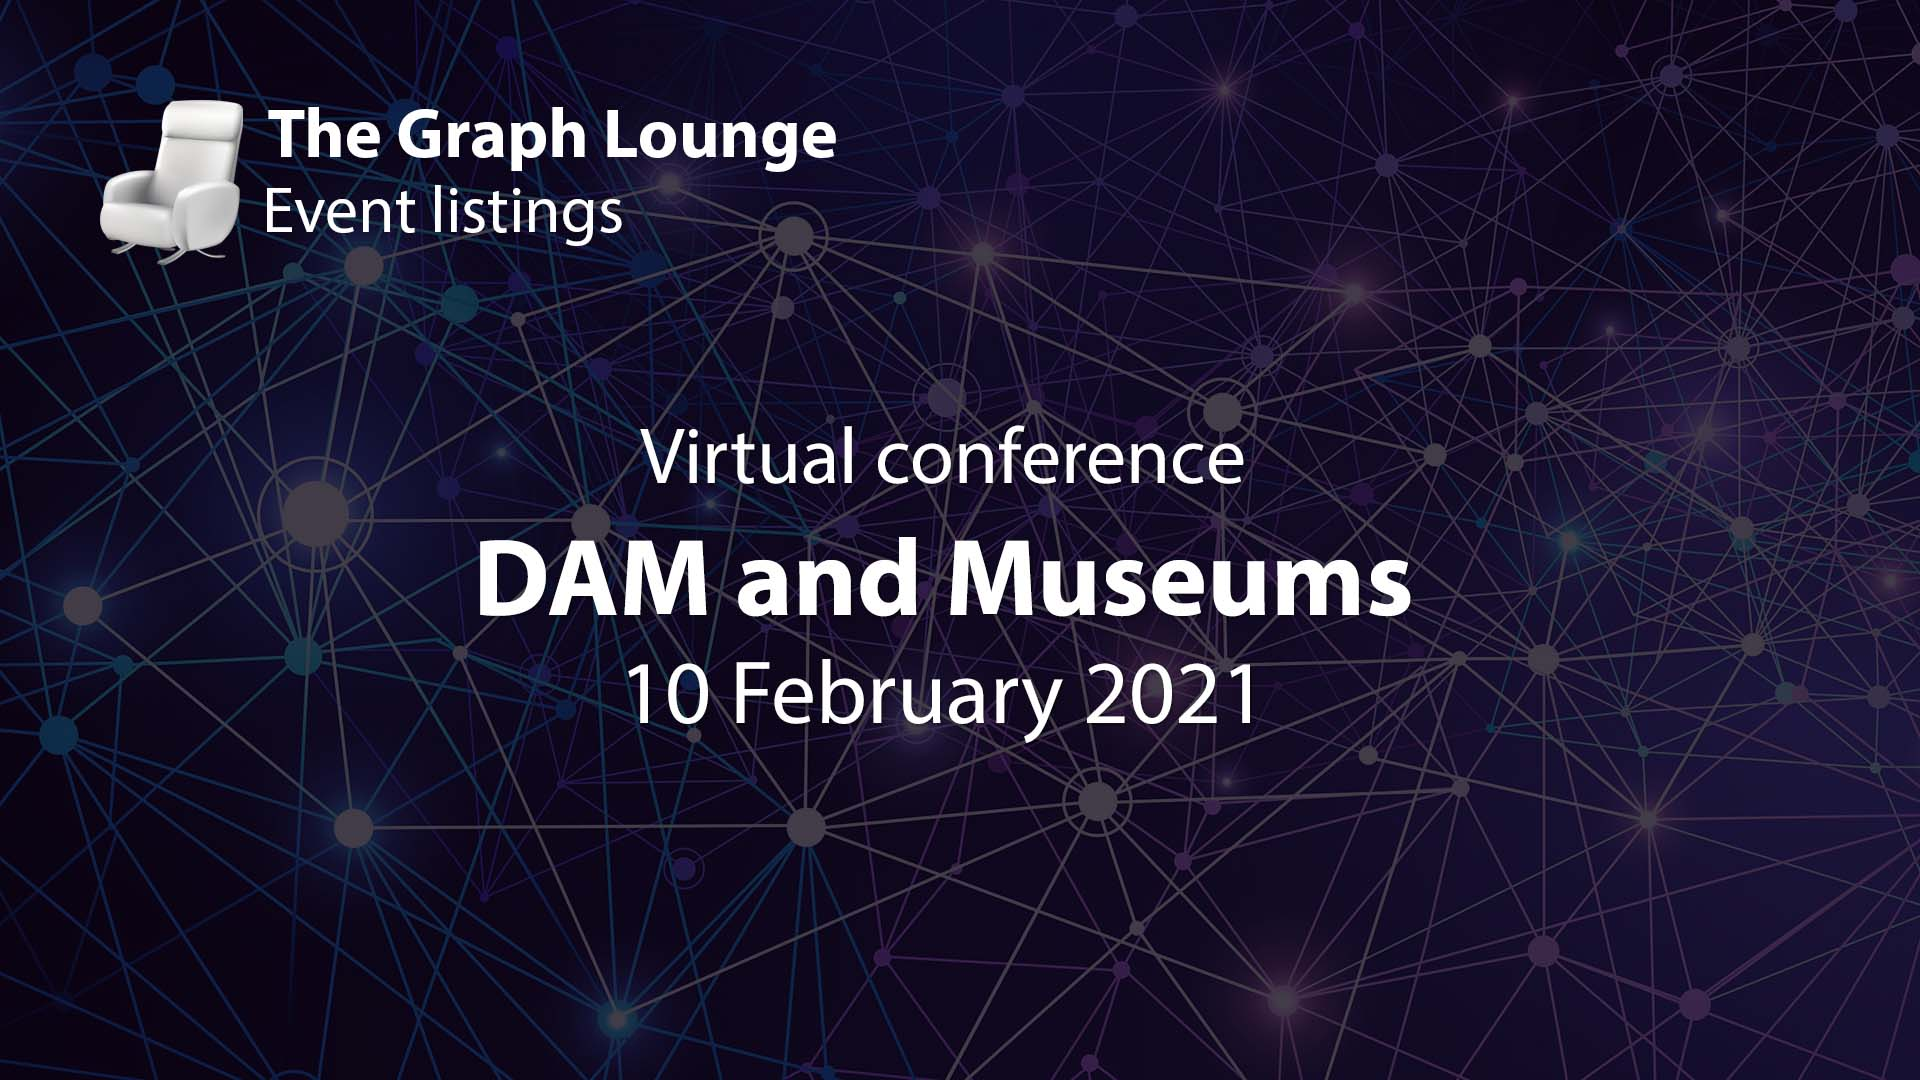 DAM (Digital Asset Management)l and Museums